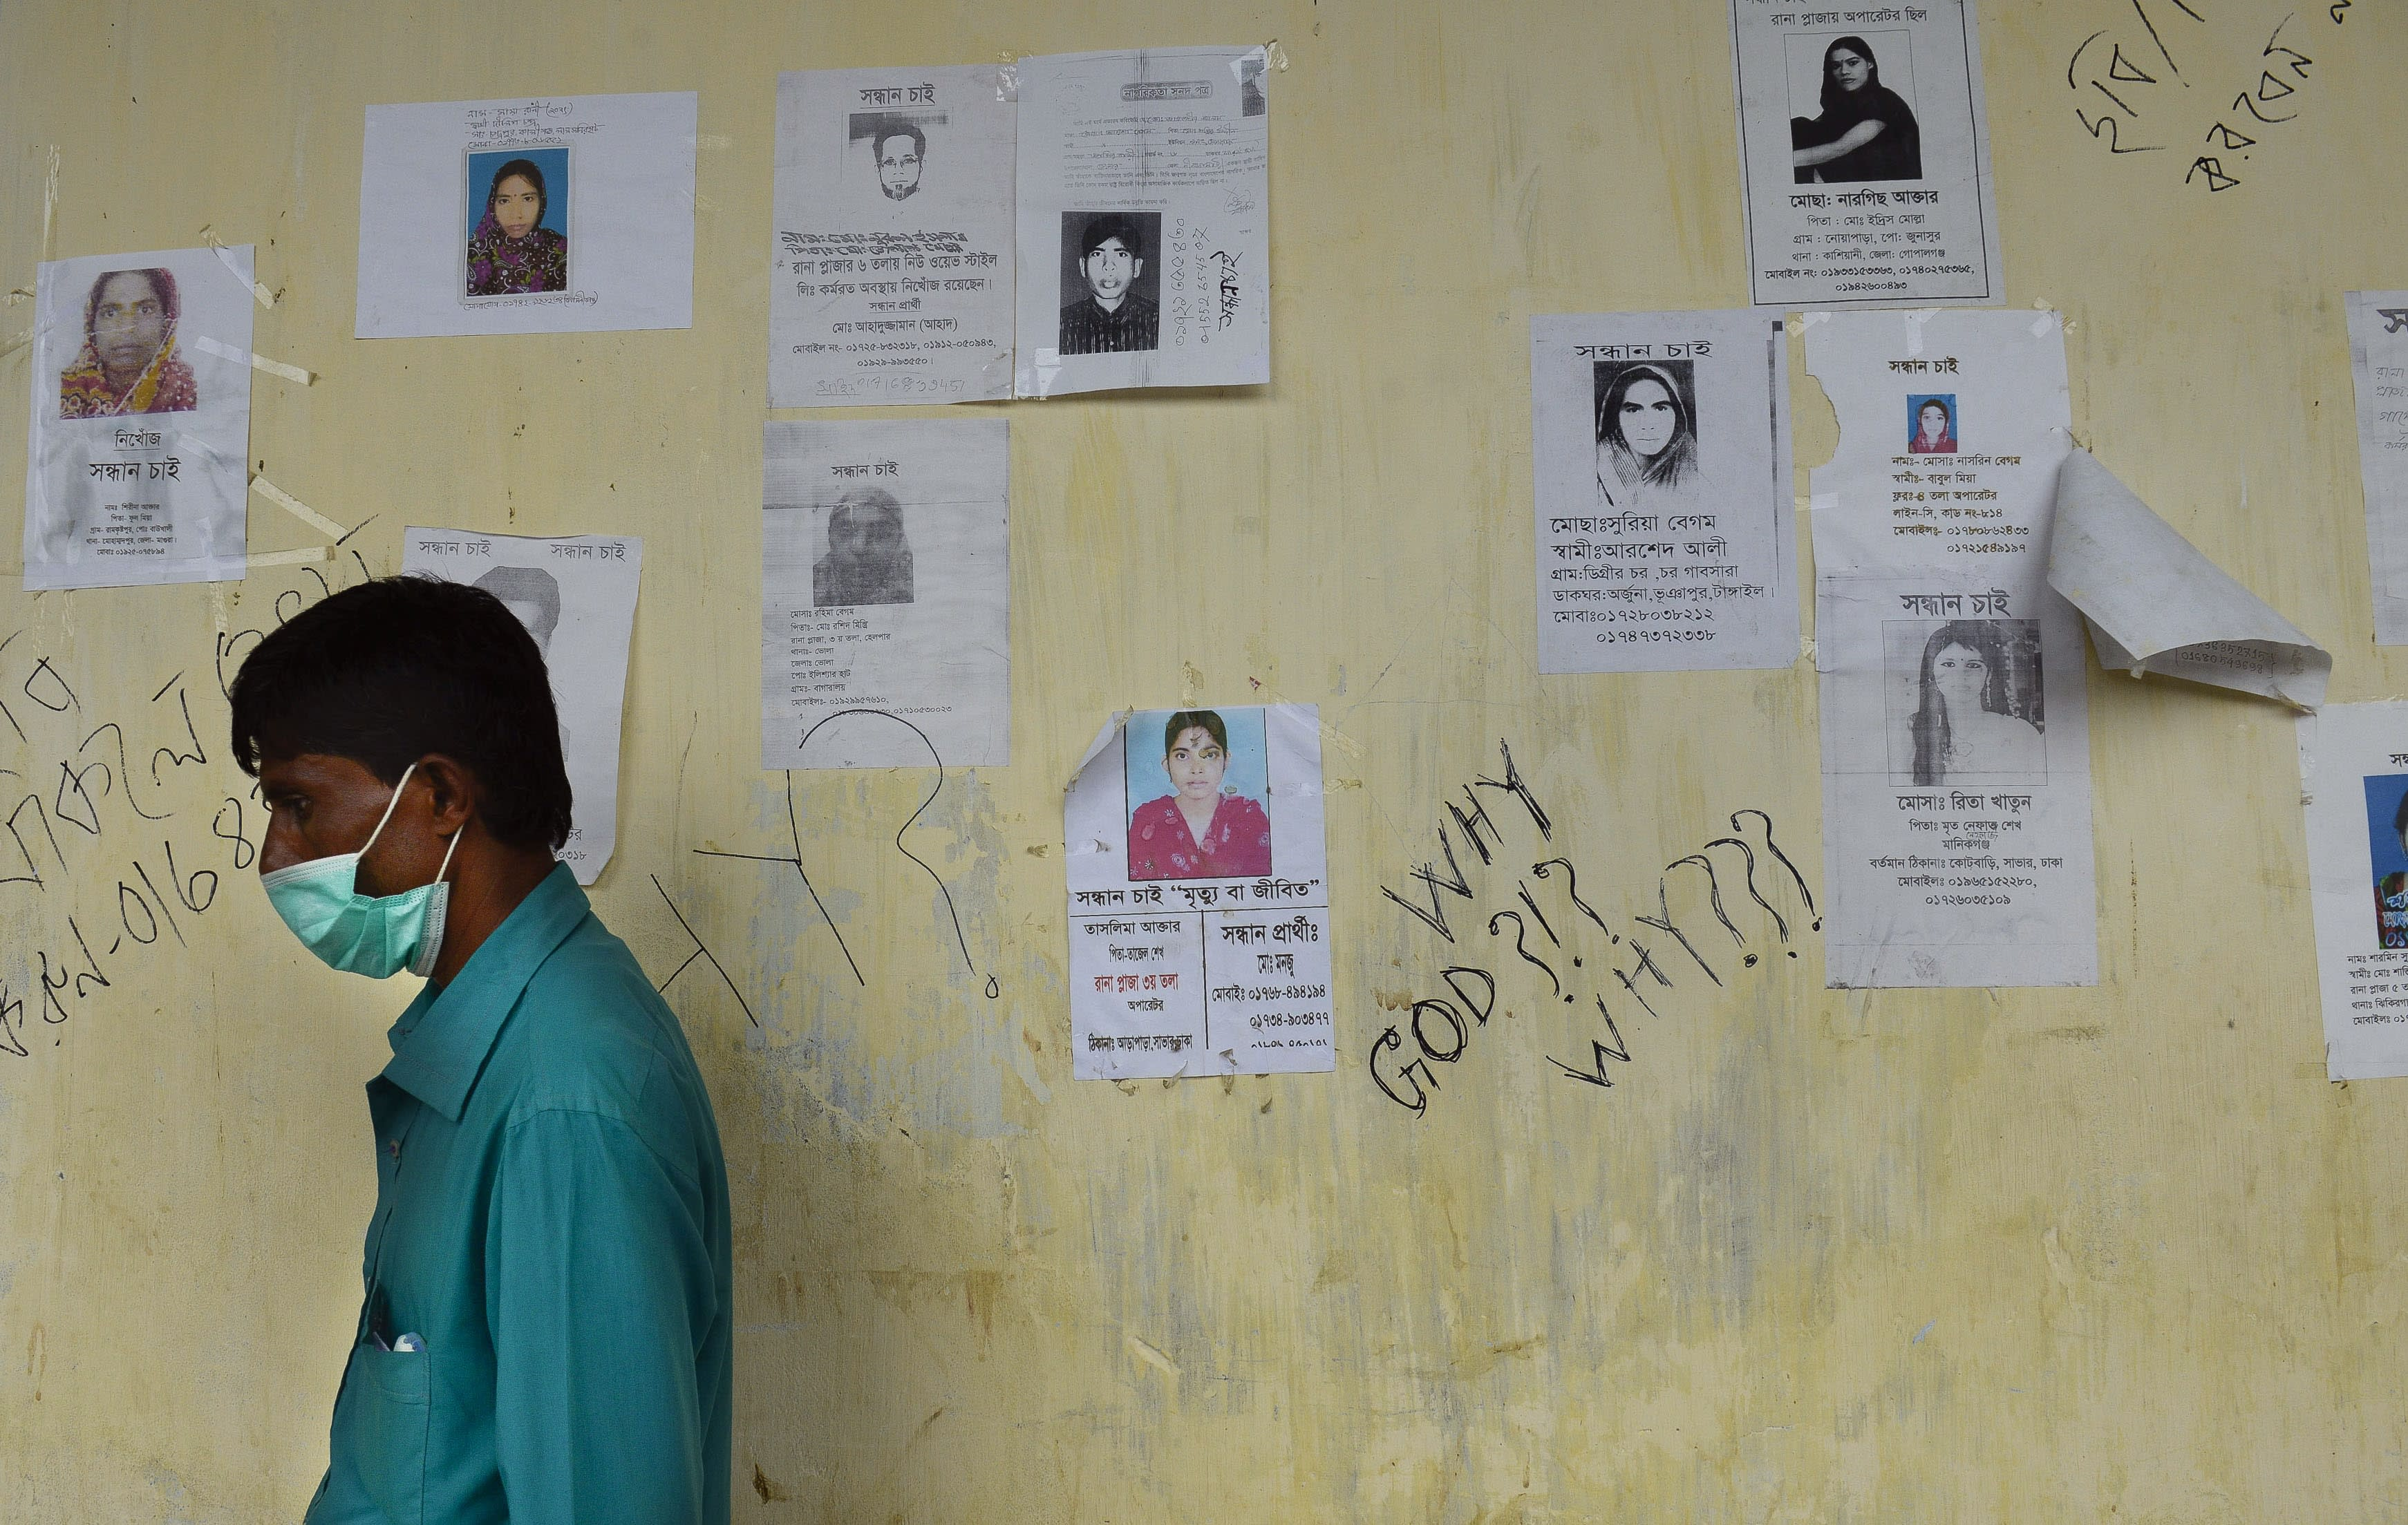 A Bangladeshi man walks past portraits of missing victims and graffiti written on the wall of a makeshift morgue in Savar, near Dhaka, Thursday, May 9, 2013. The death toll from the collapse of a garment factory building passed 900 on Thursday even as a fire in an 11-story garment factory Wednesday night in Dhaka killed eight people, including a ruling-party politician and a top official in the country's powerful clothing manufacturers' trade group. (AP Photo/Ismail Ferdous)